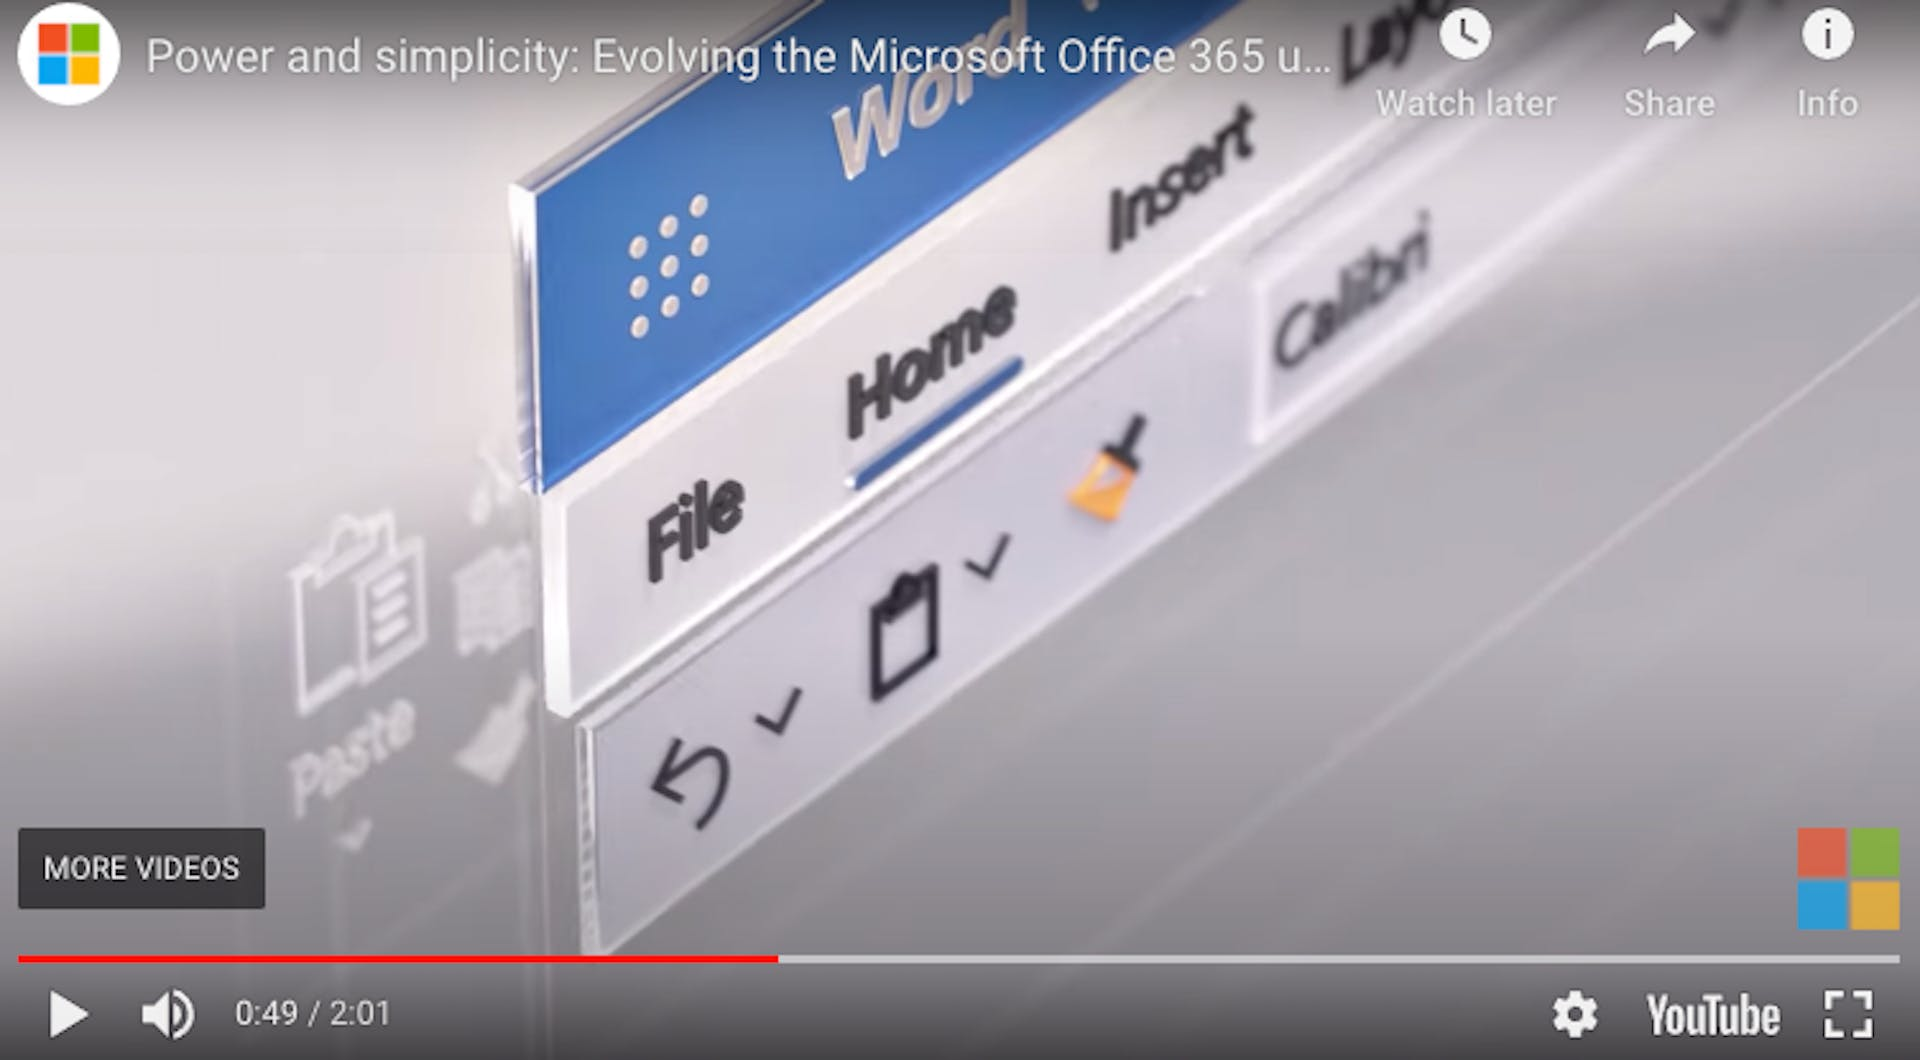 Microsoft's brand video features stylised versions of upgrades to its Office 365 products